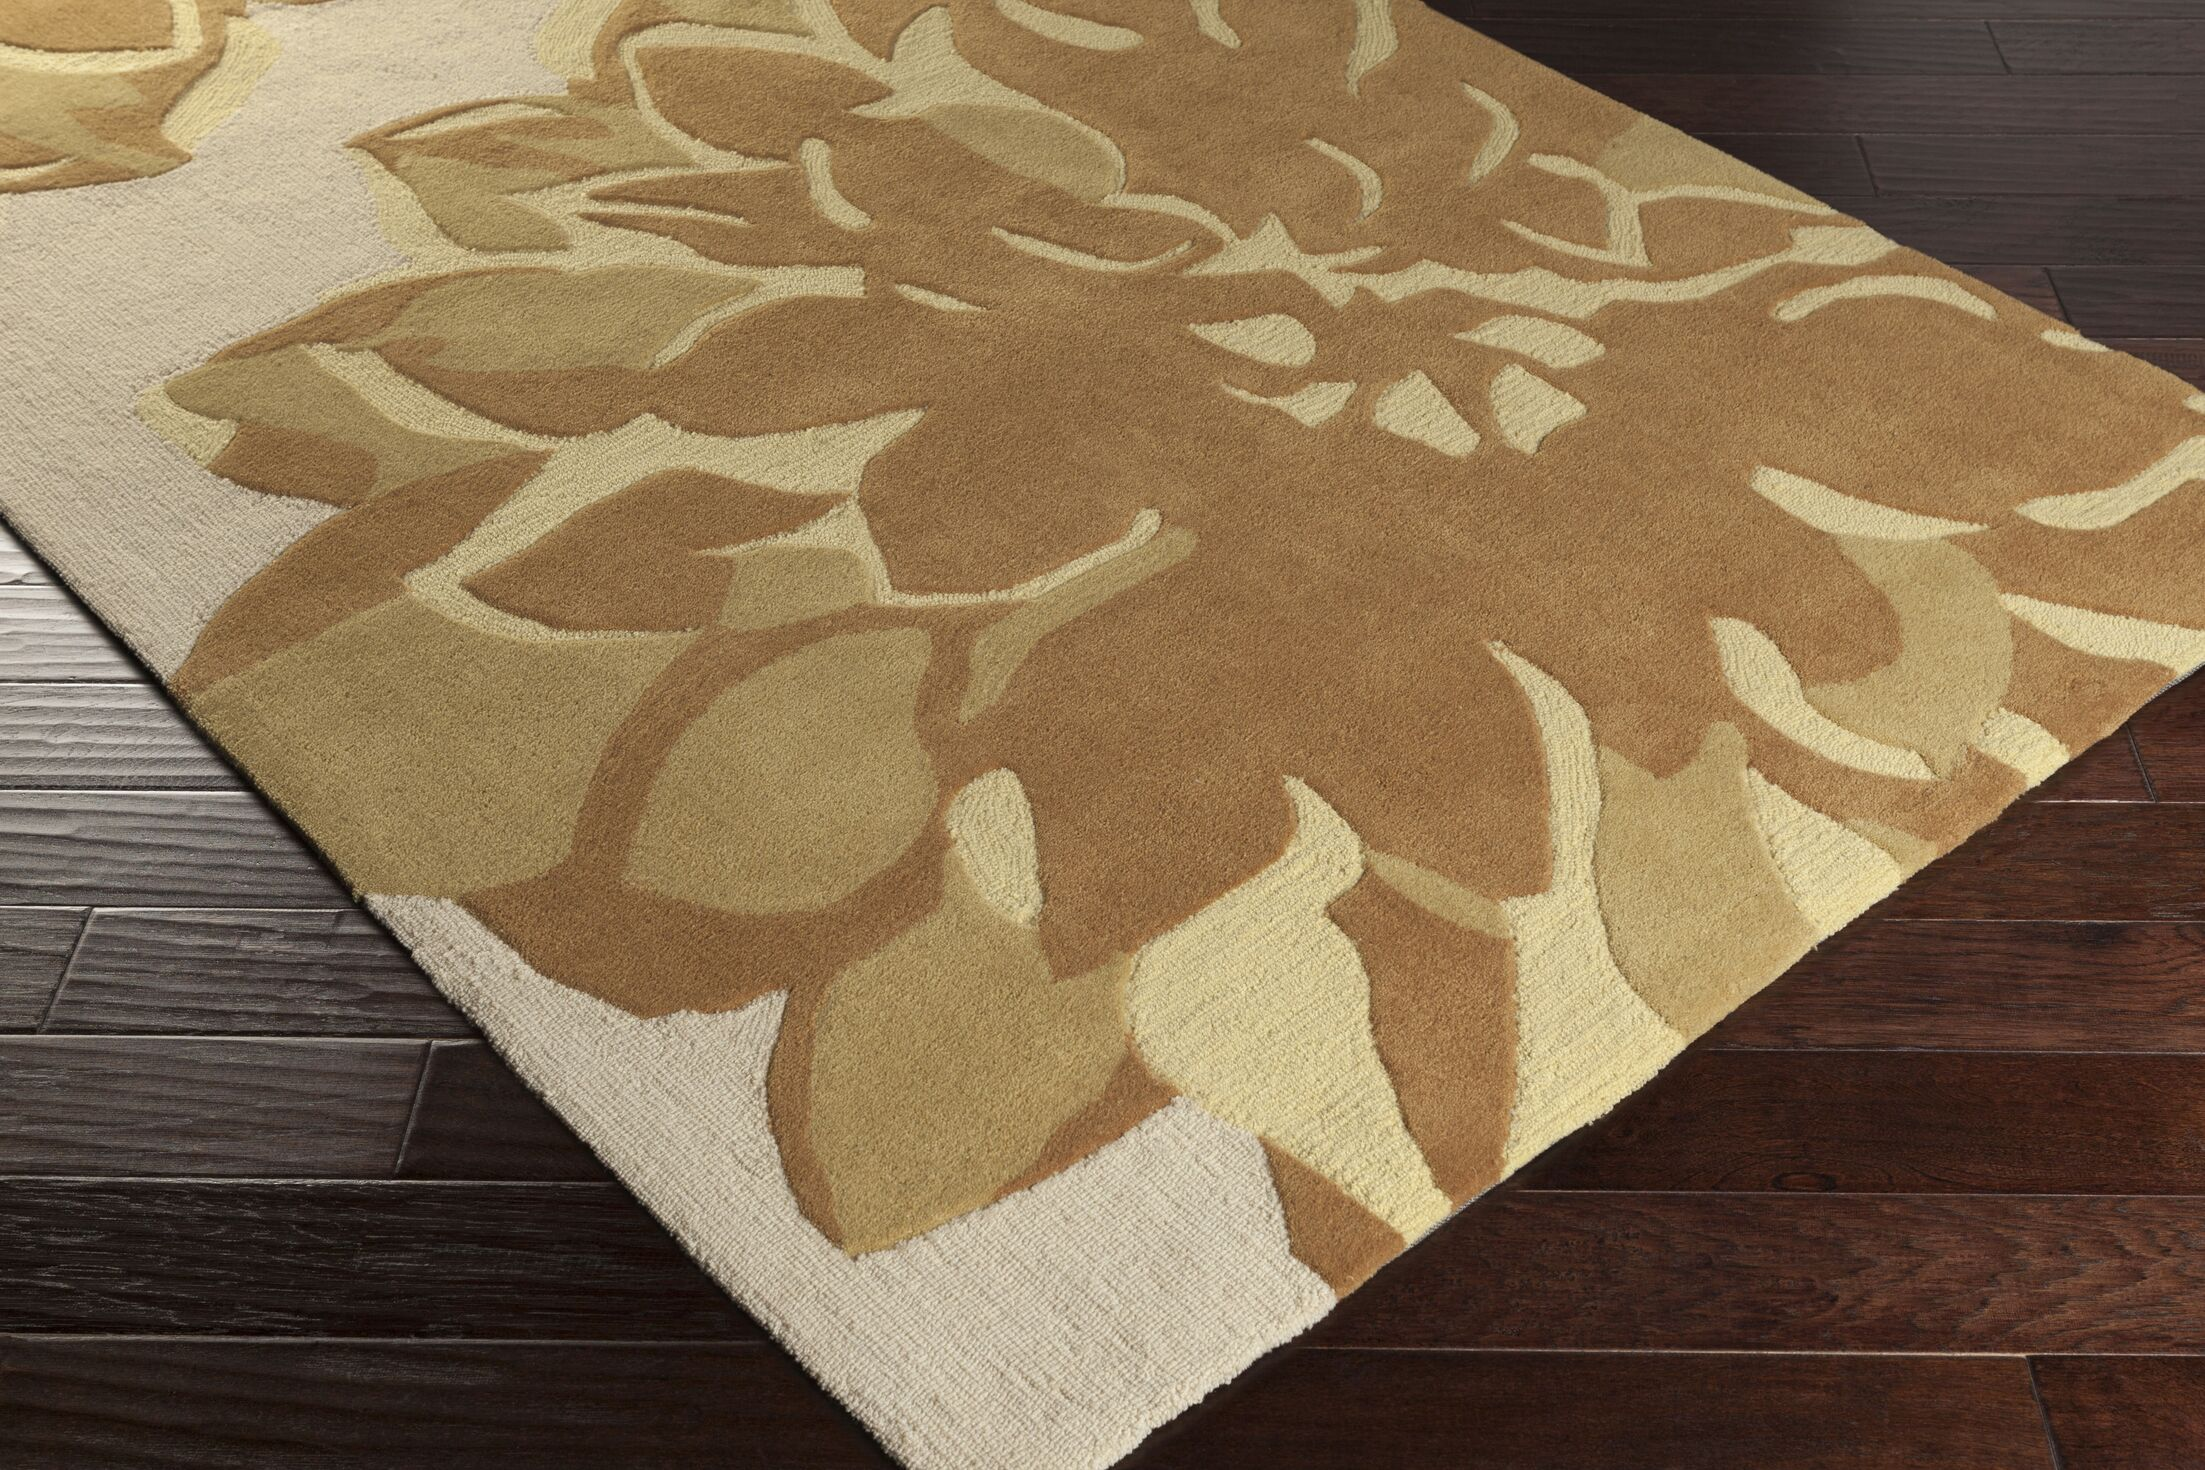 Butner Hand-Tufted Gray/Brown Area Rug Rug Size: Rectangle 8' x 11'